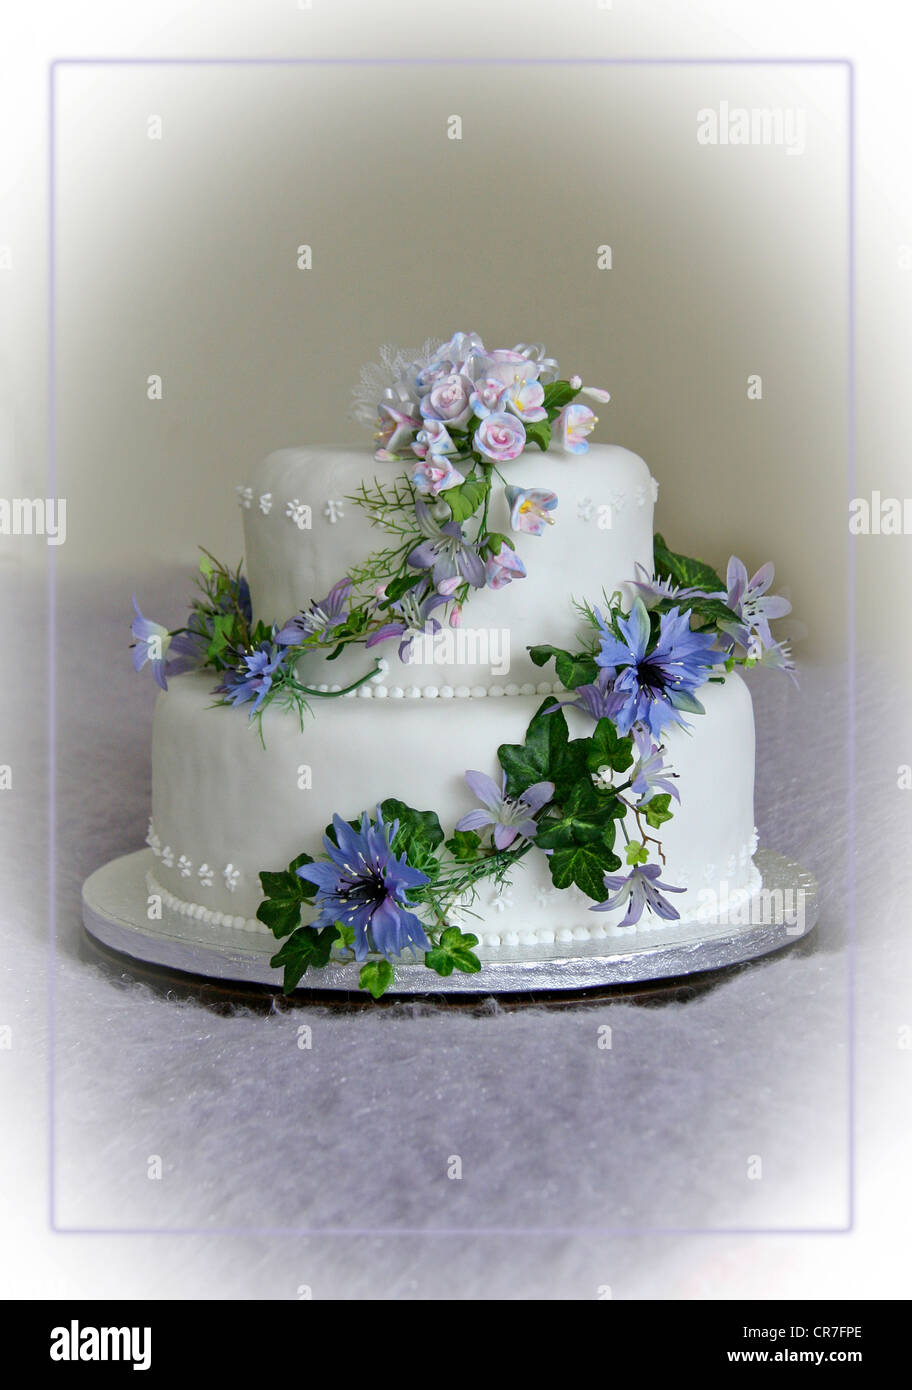 Wedding Cake With Lilac And Blue Flowers Stock Photo 48723878 Alamy